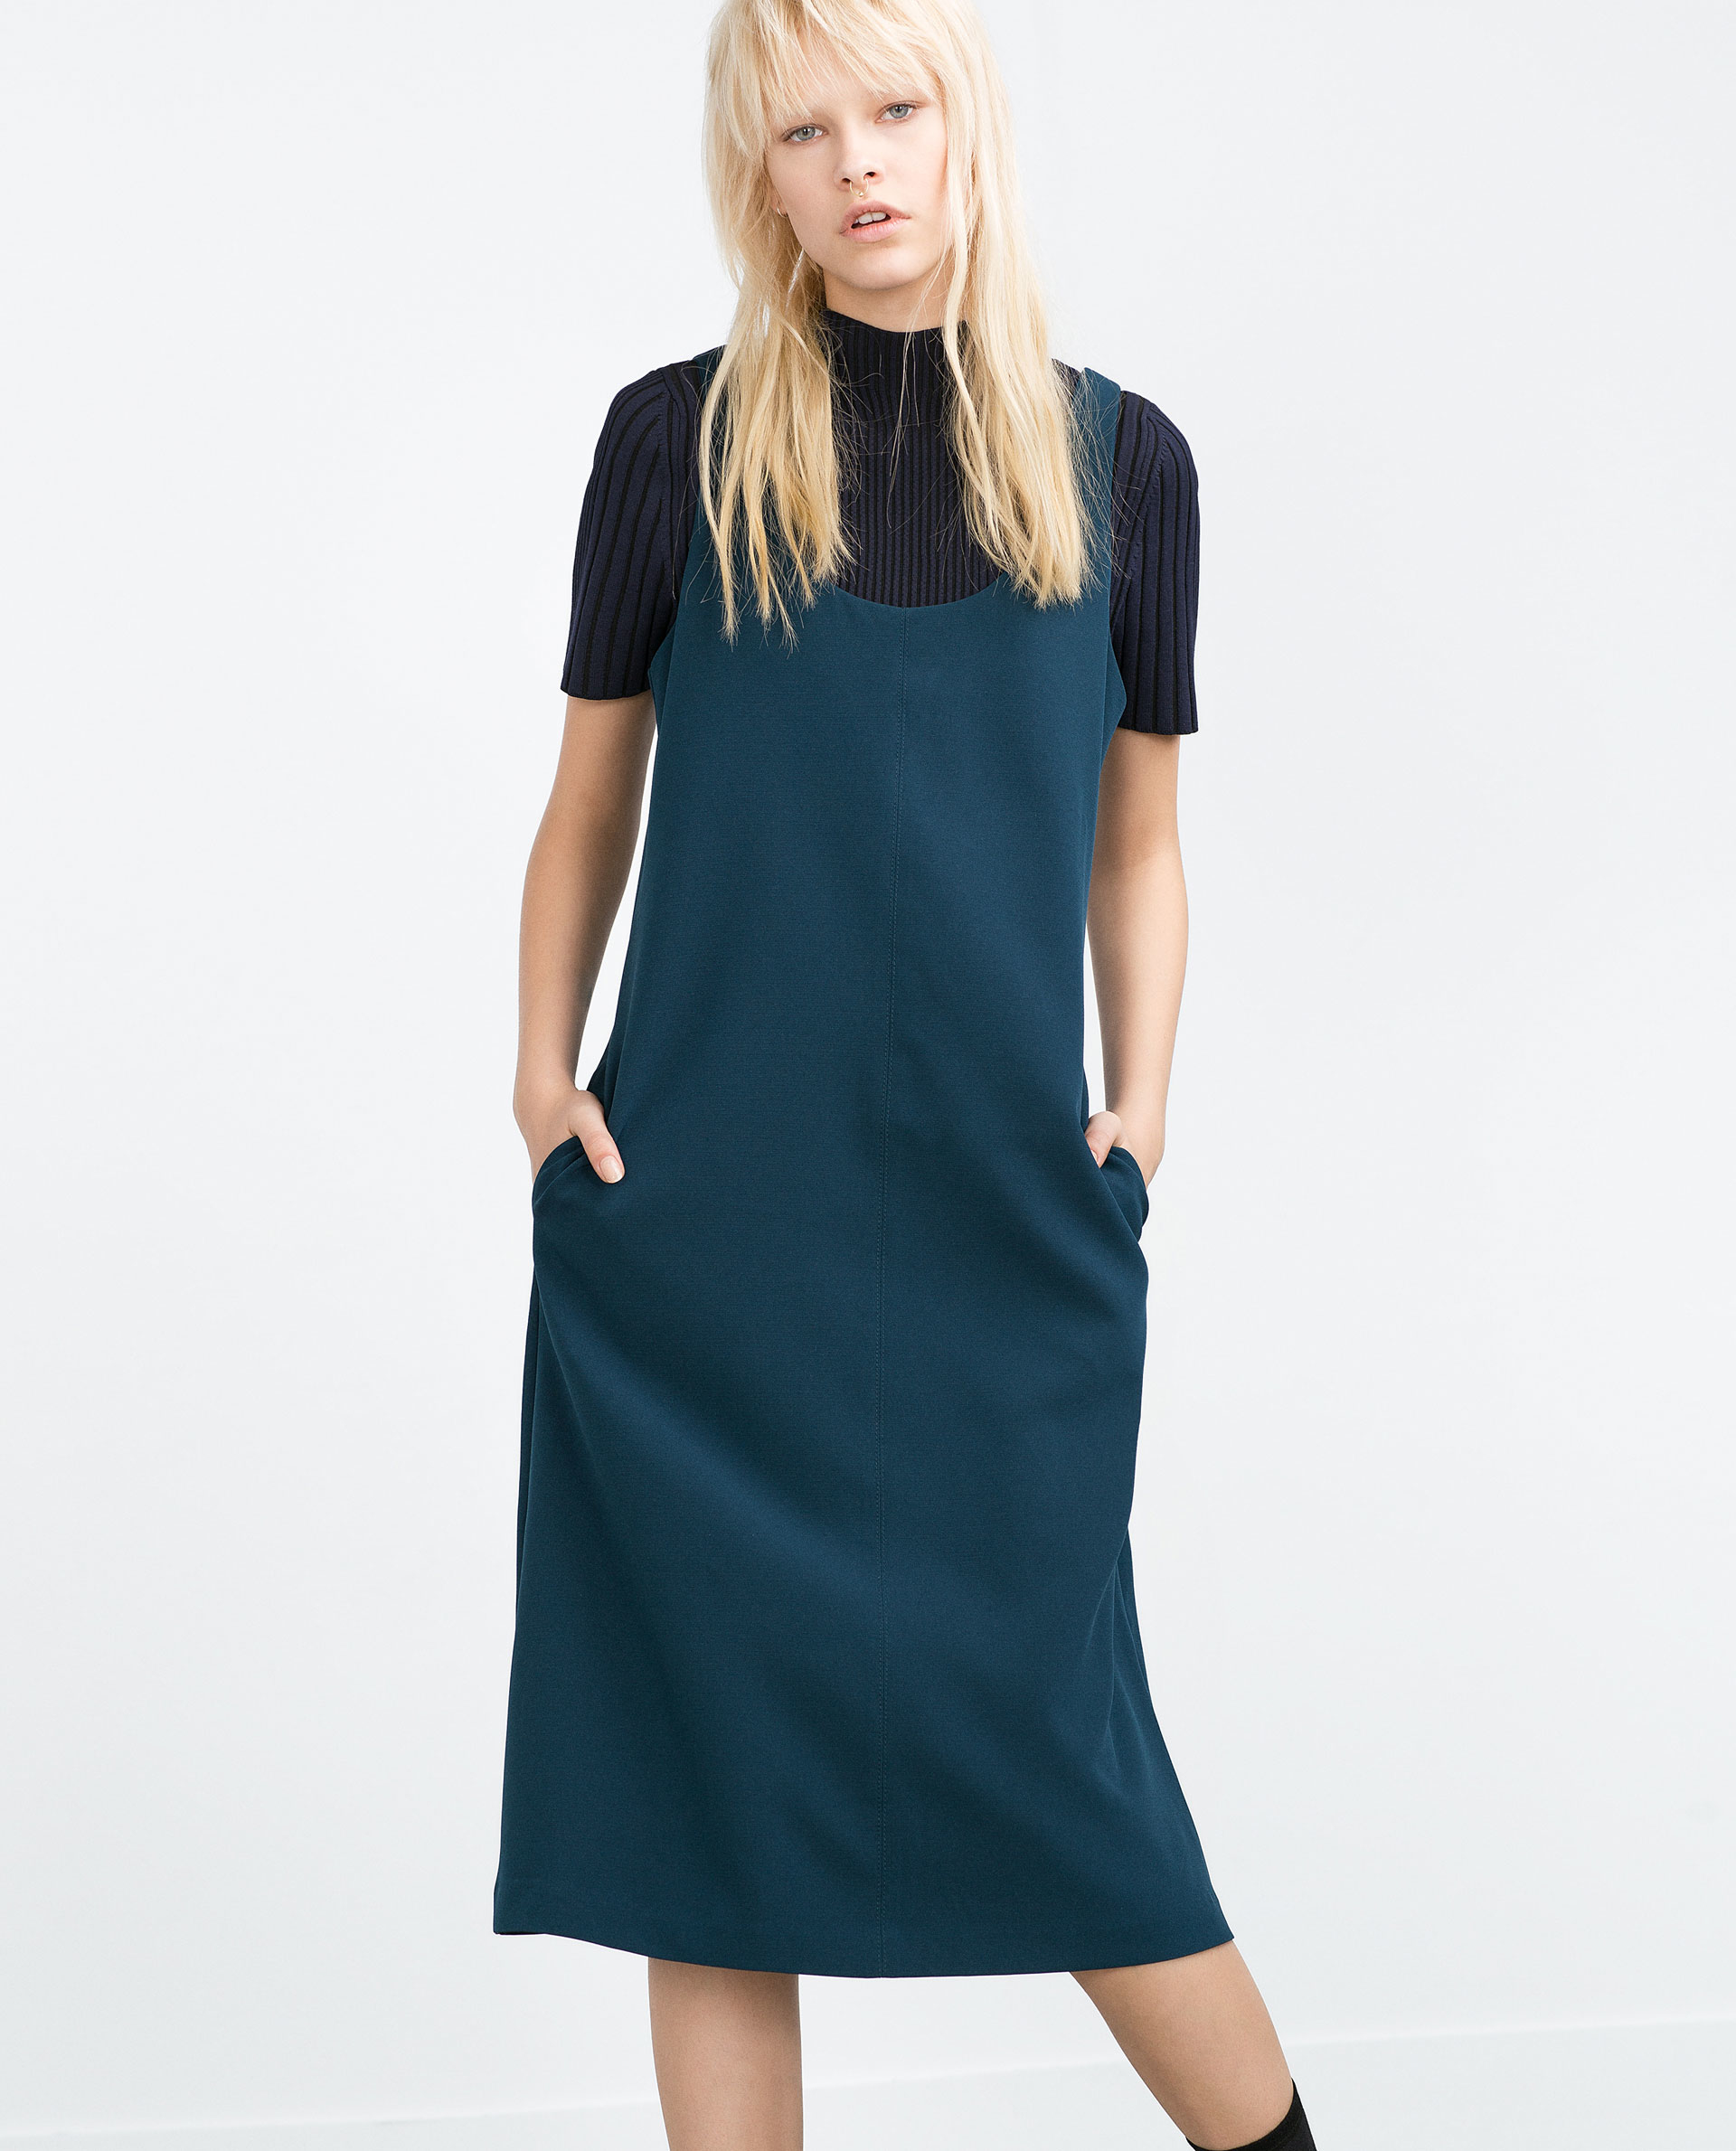 Cocktail Dress Stores On Long Island - Gallery Fashion